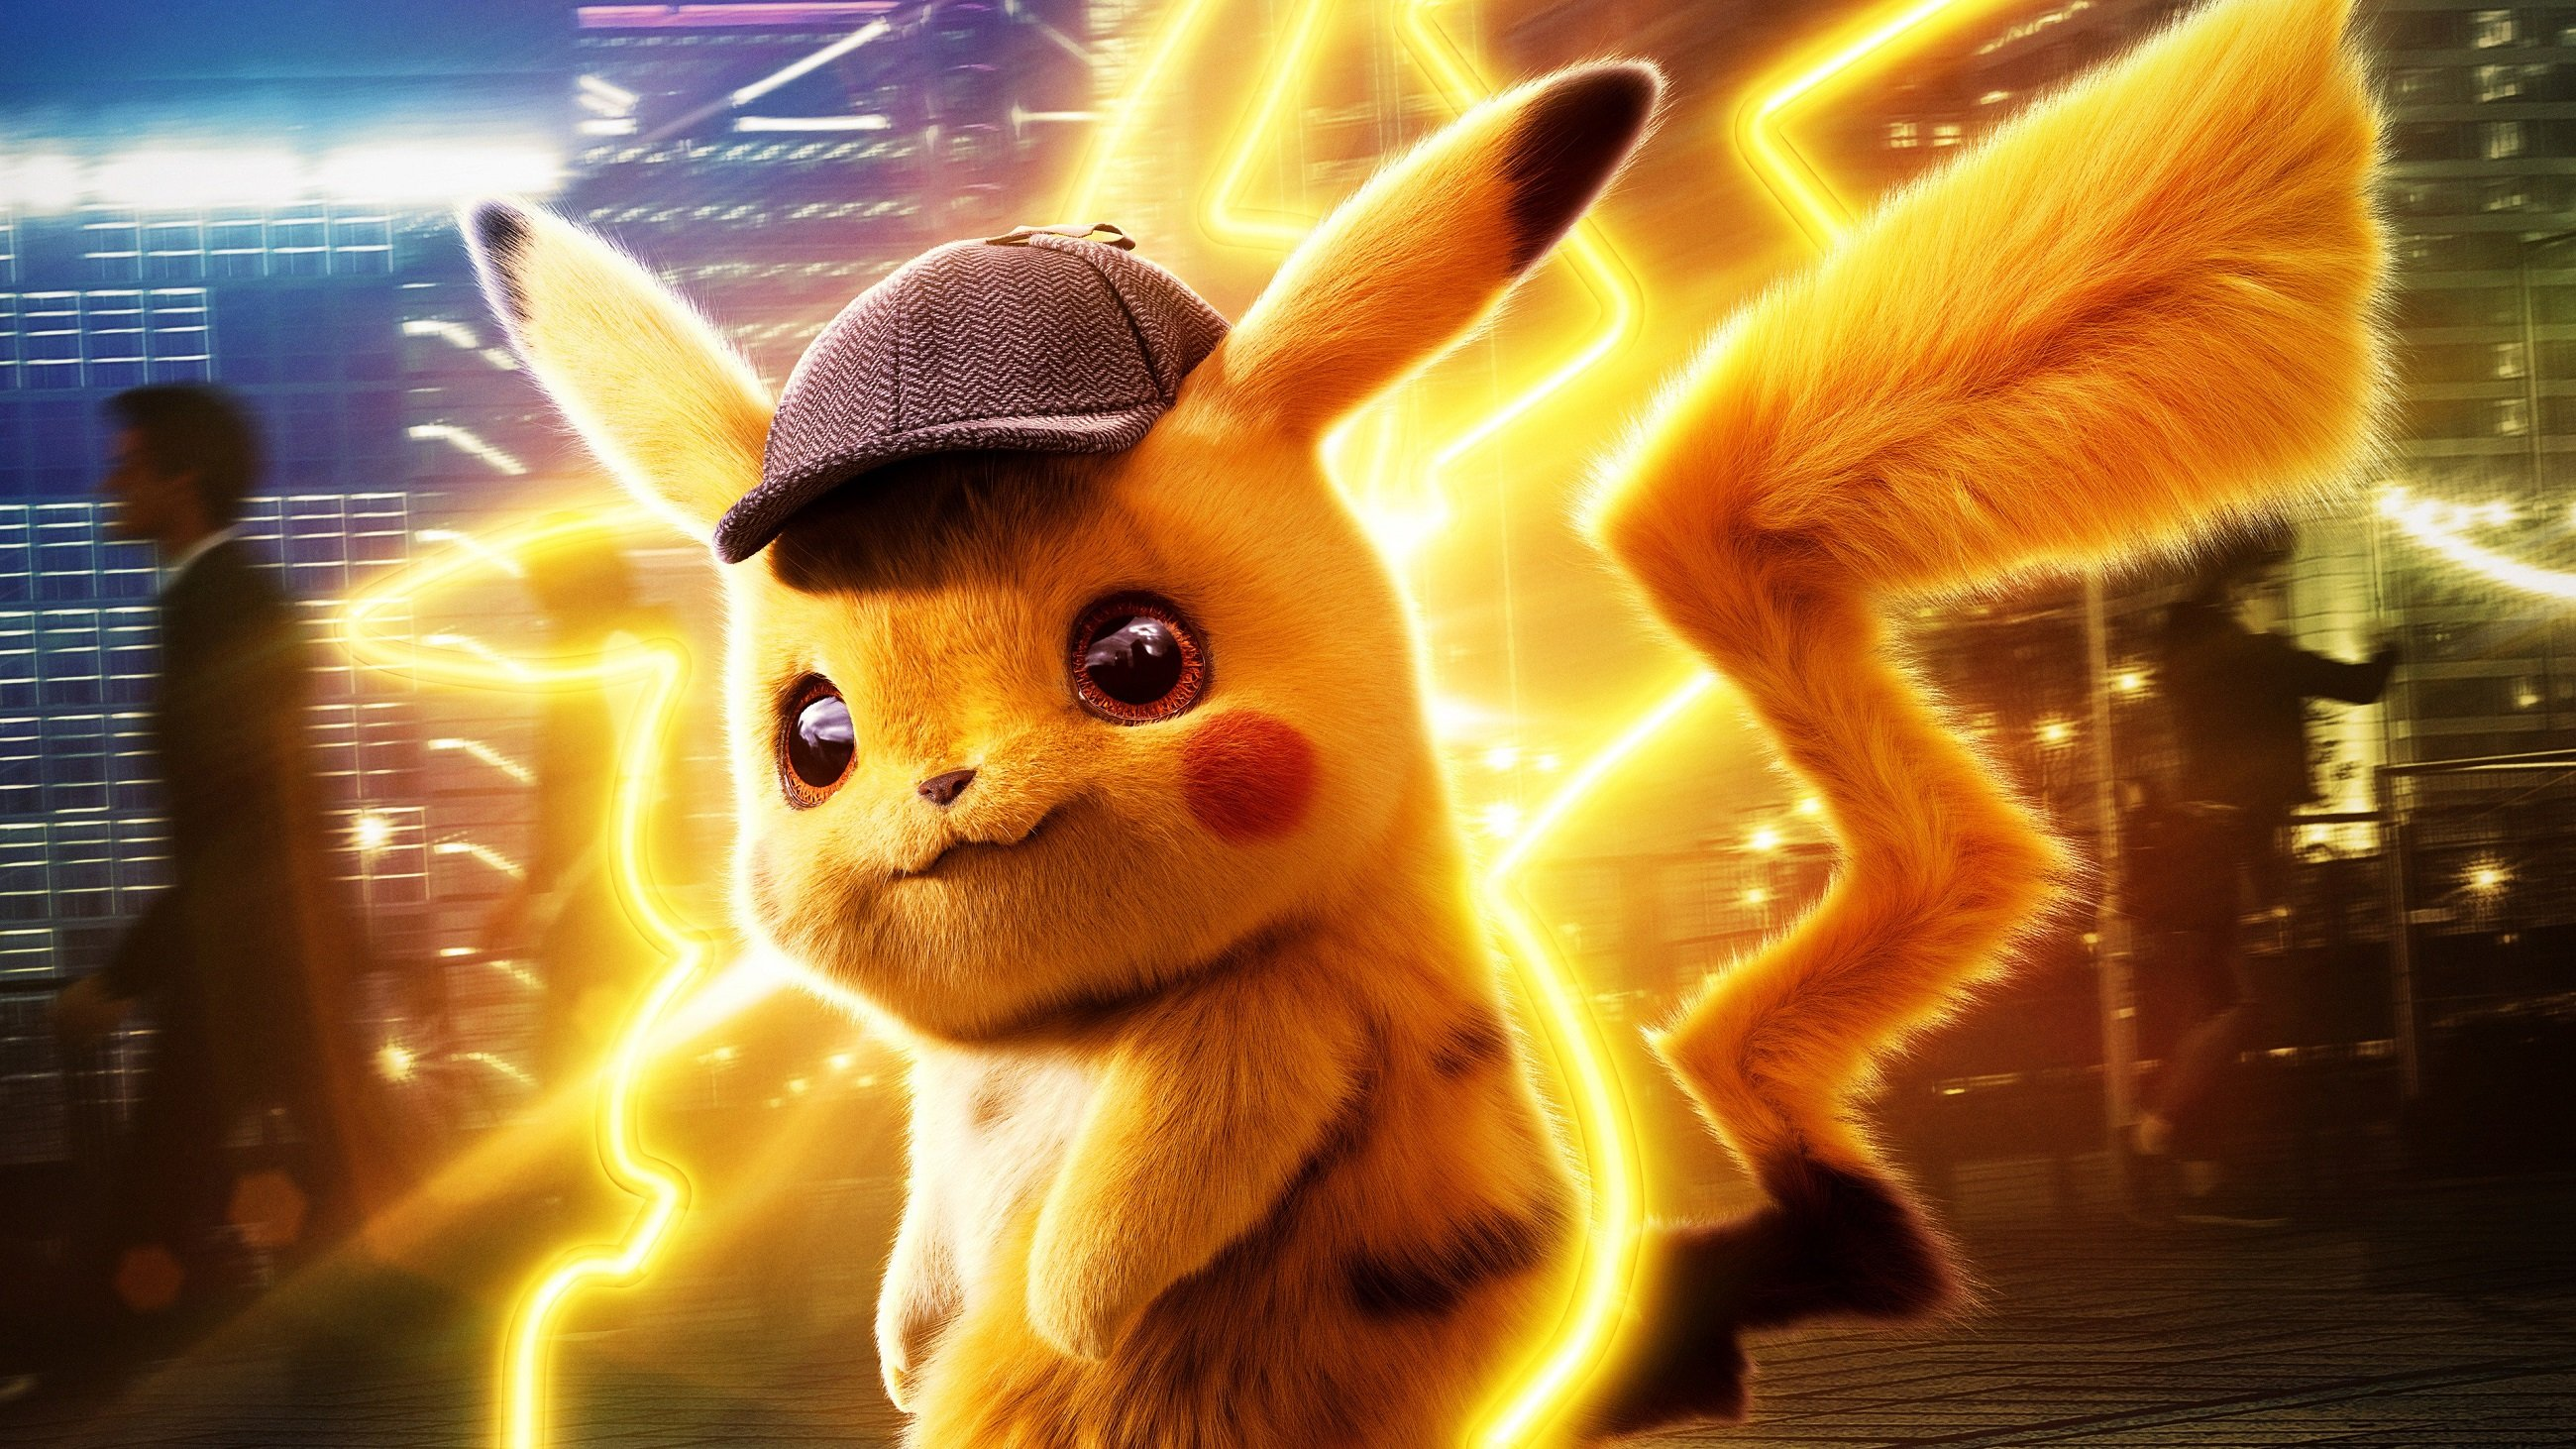 Detective Pikachu is full of heartfelt moments and clever comedy.